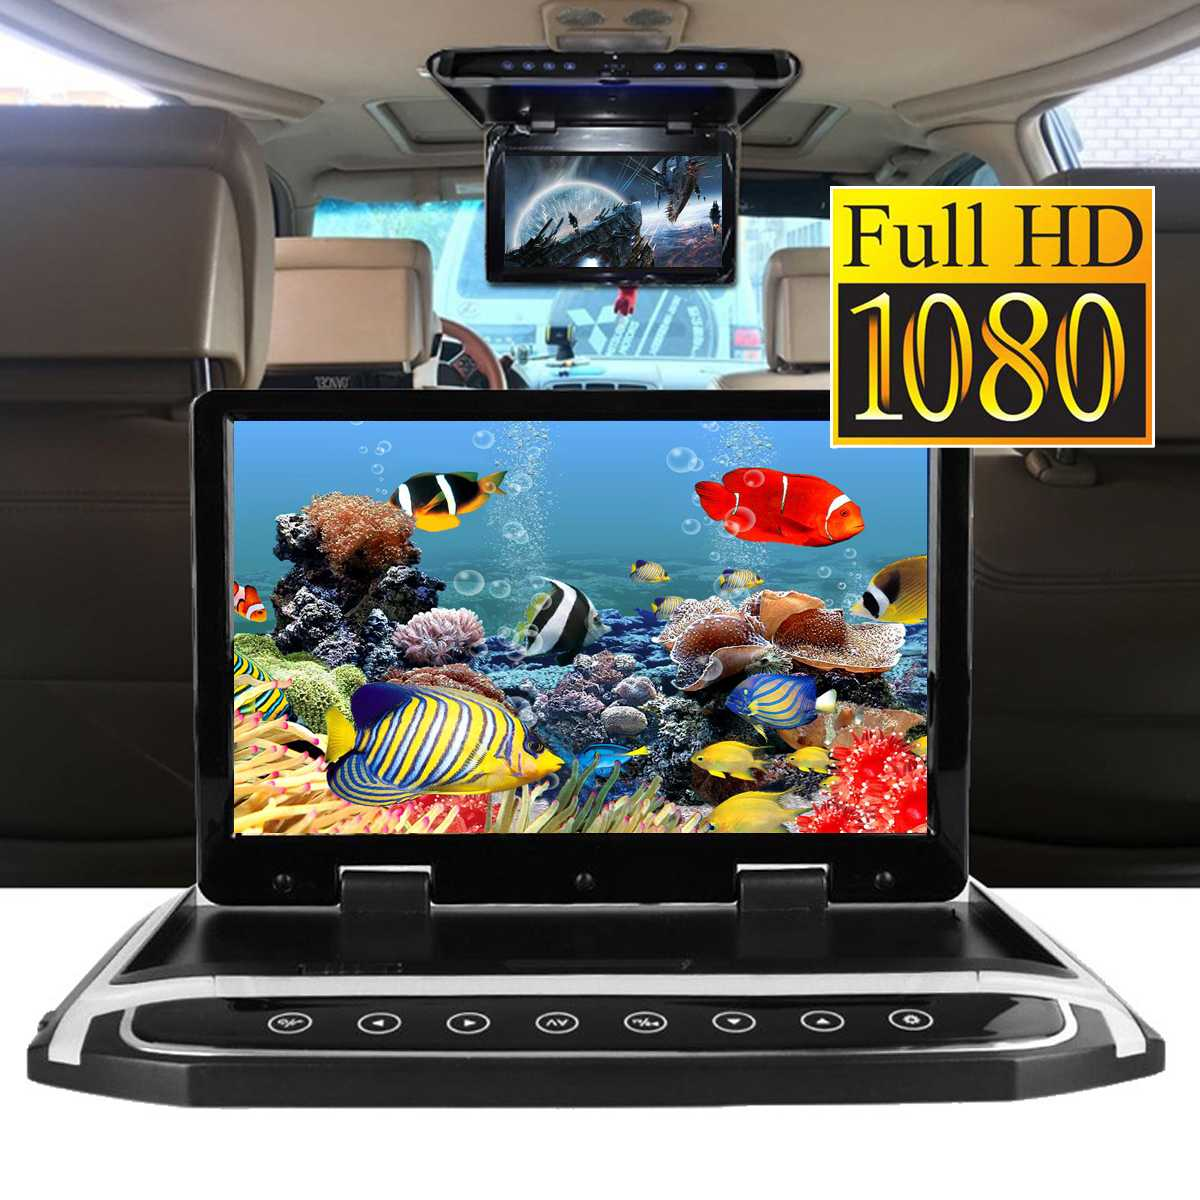 15.6 HD Wide Screen Car DVD Player HDMI Car Ceiling Flip Down Monitor Roof Mount Player 1920*1080 - 6